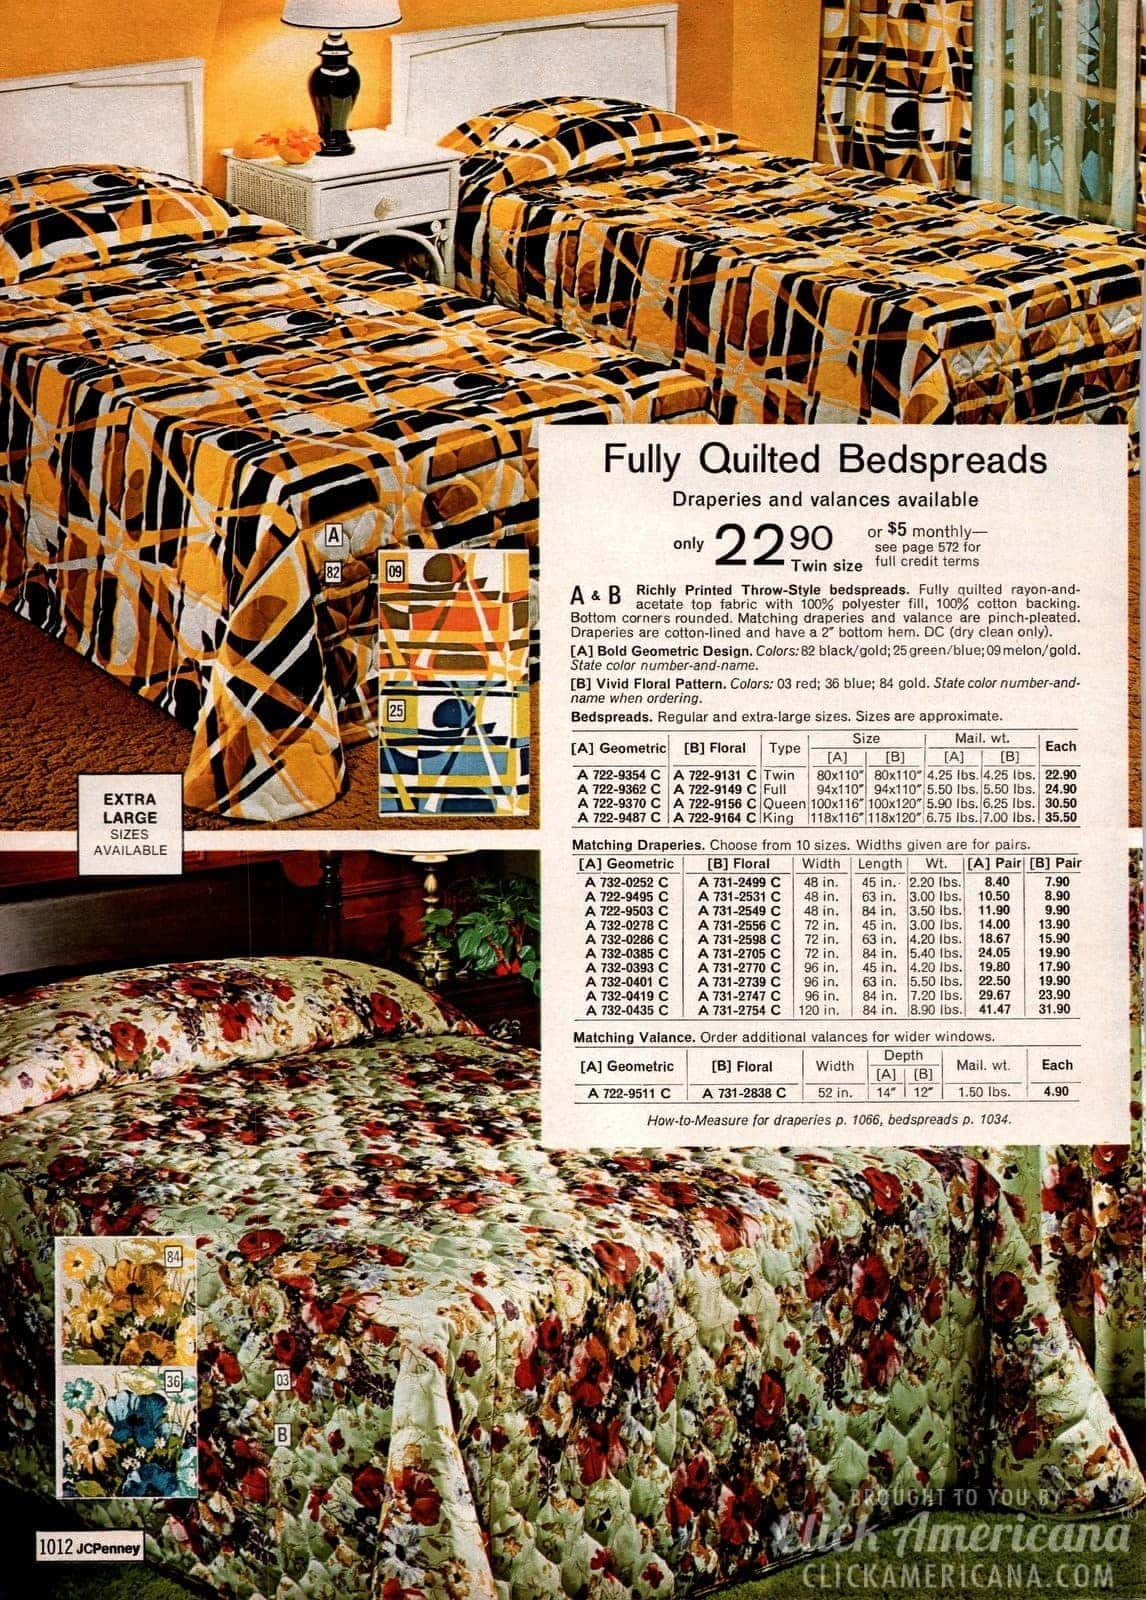 Quilted bedspreads, draperies & valances - Geometric and floral prints